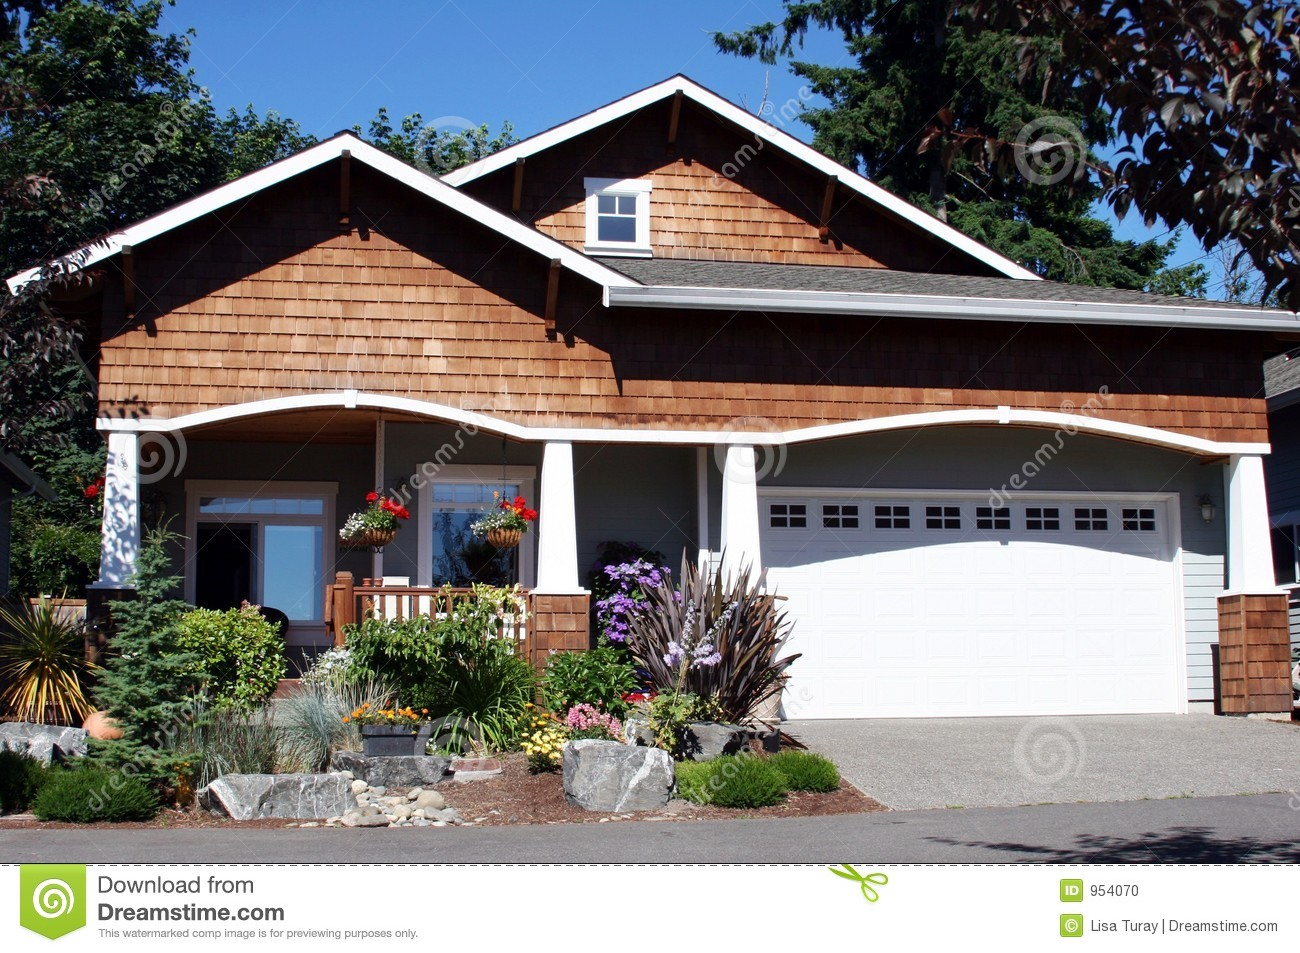 Craftsman style home stock photo image of cottage for Home style photo